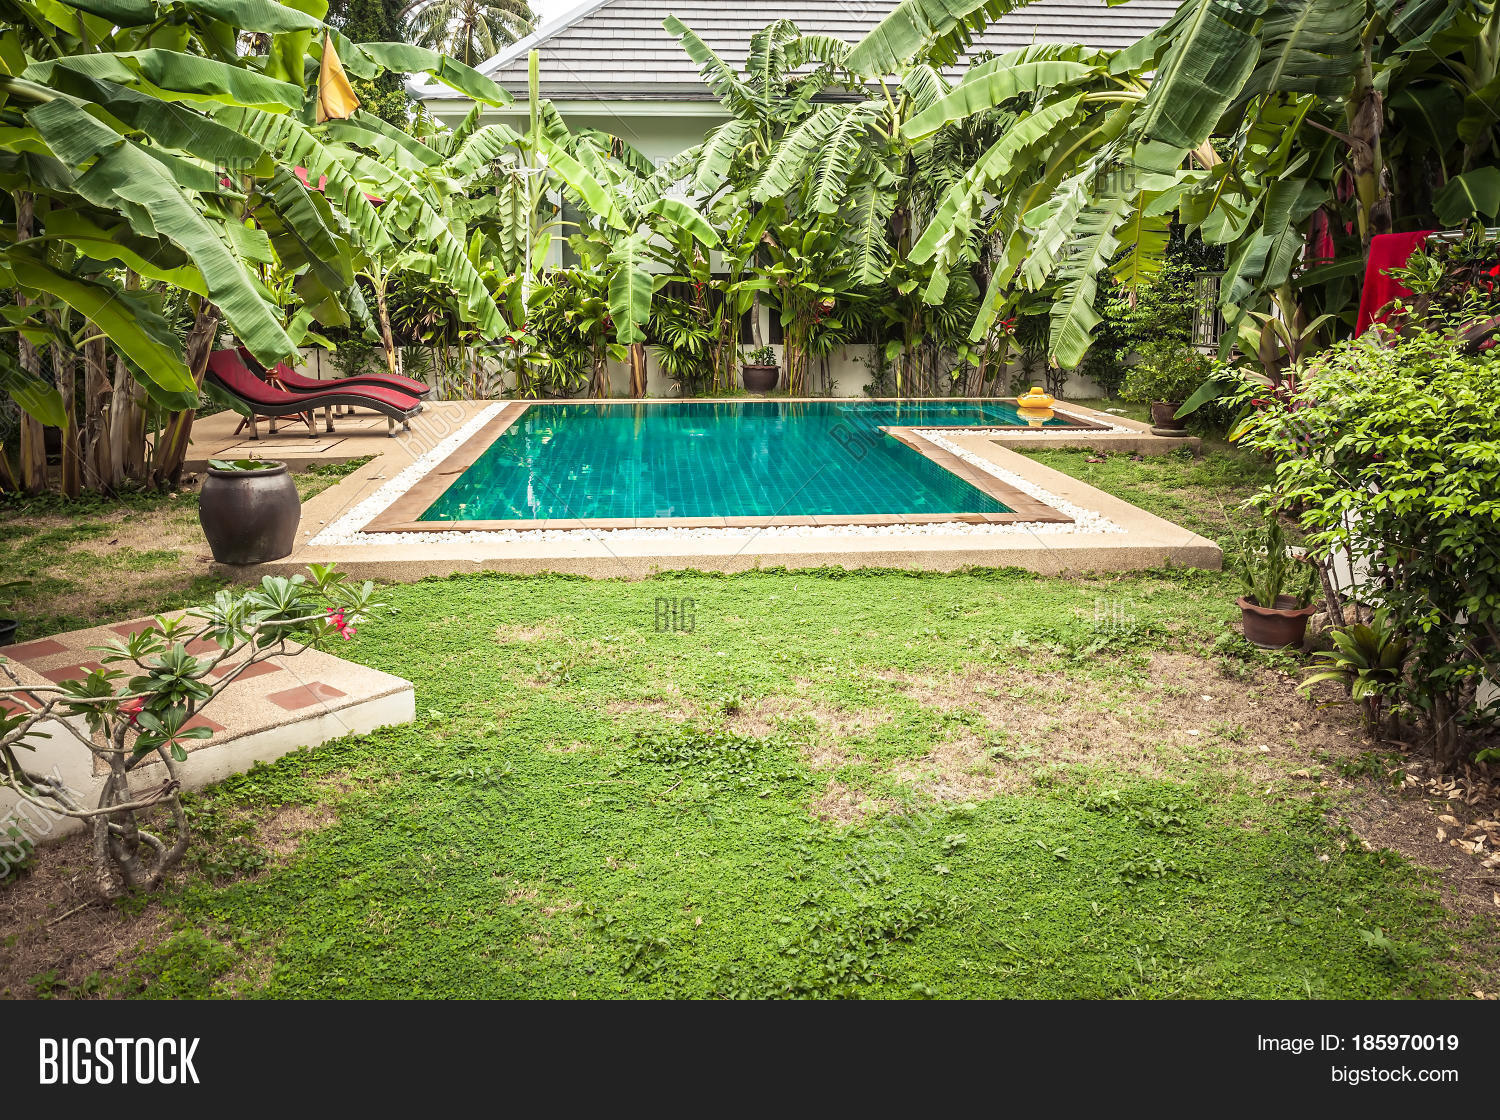 swimming pool private tropical image u0026 photo bigstock